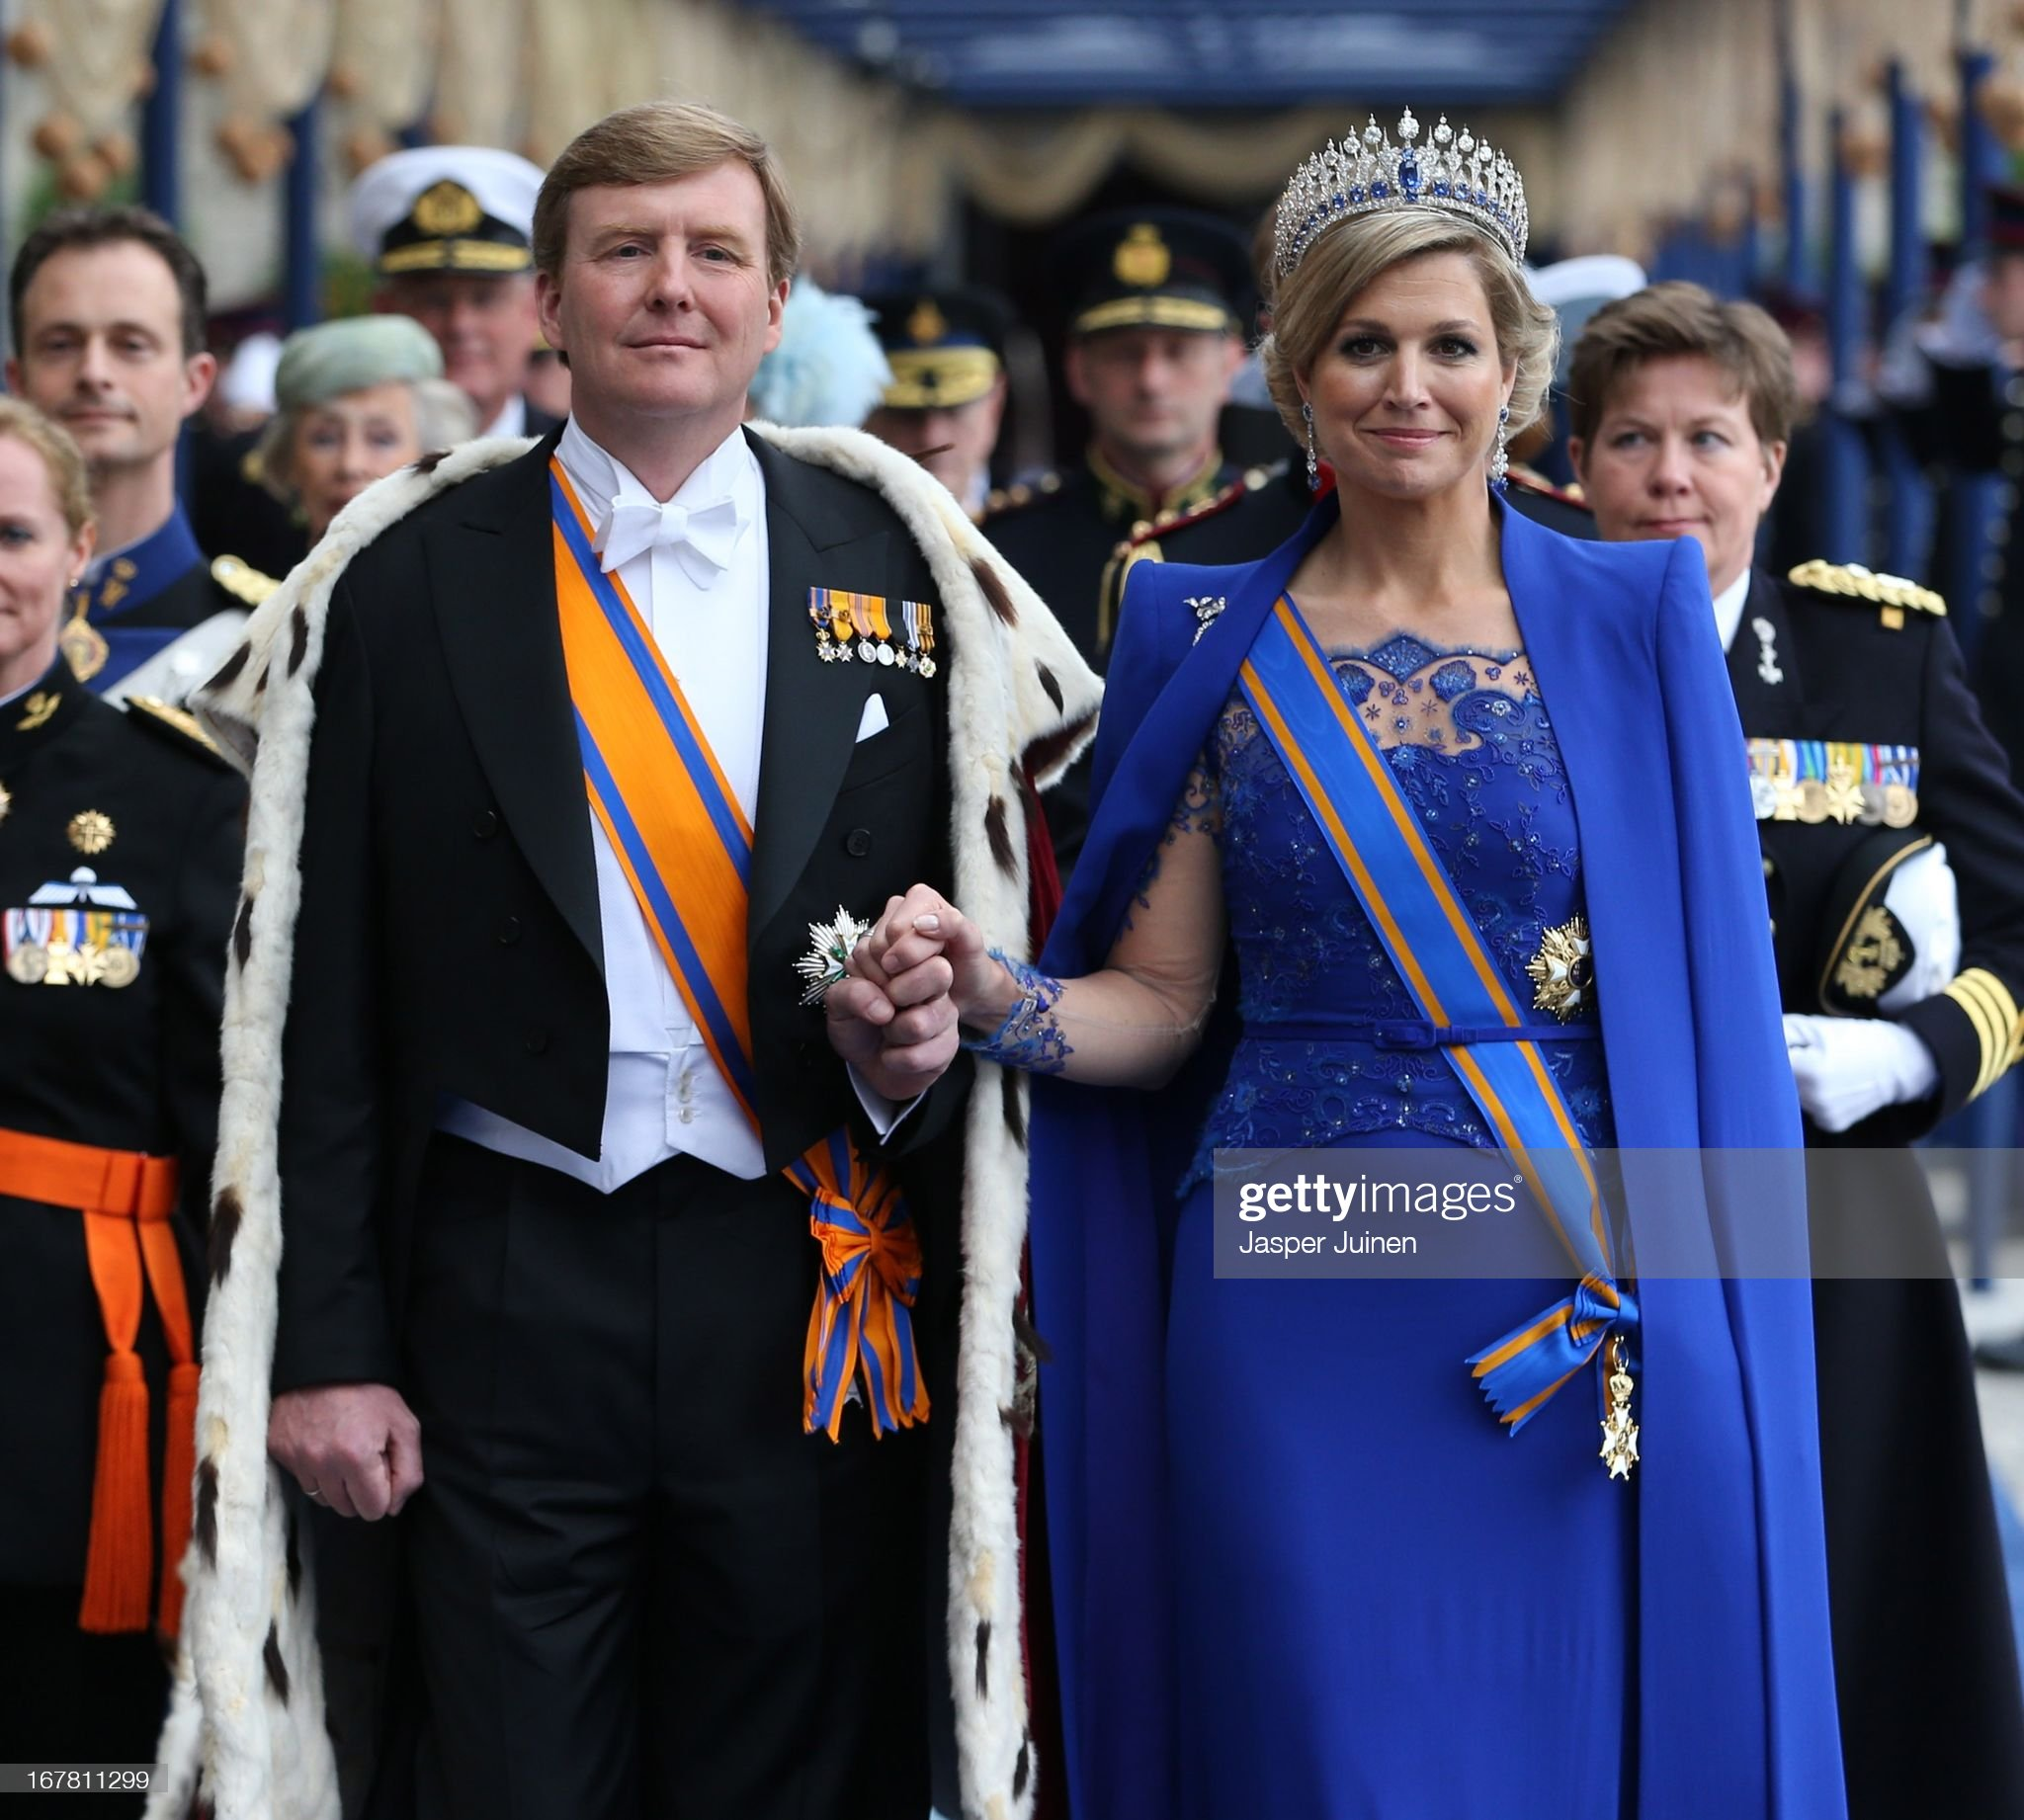 Inauguration Of King Willem Alexander As Queen Beatrix Of The Netherlands Abdicates : News Photo